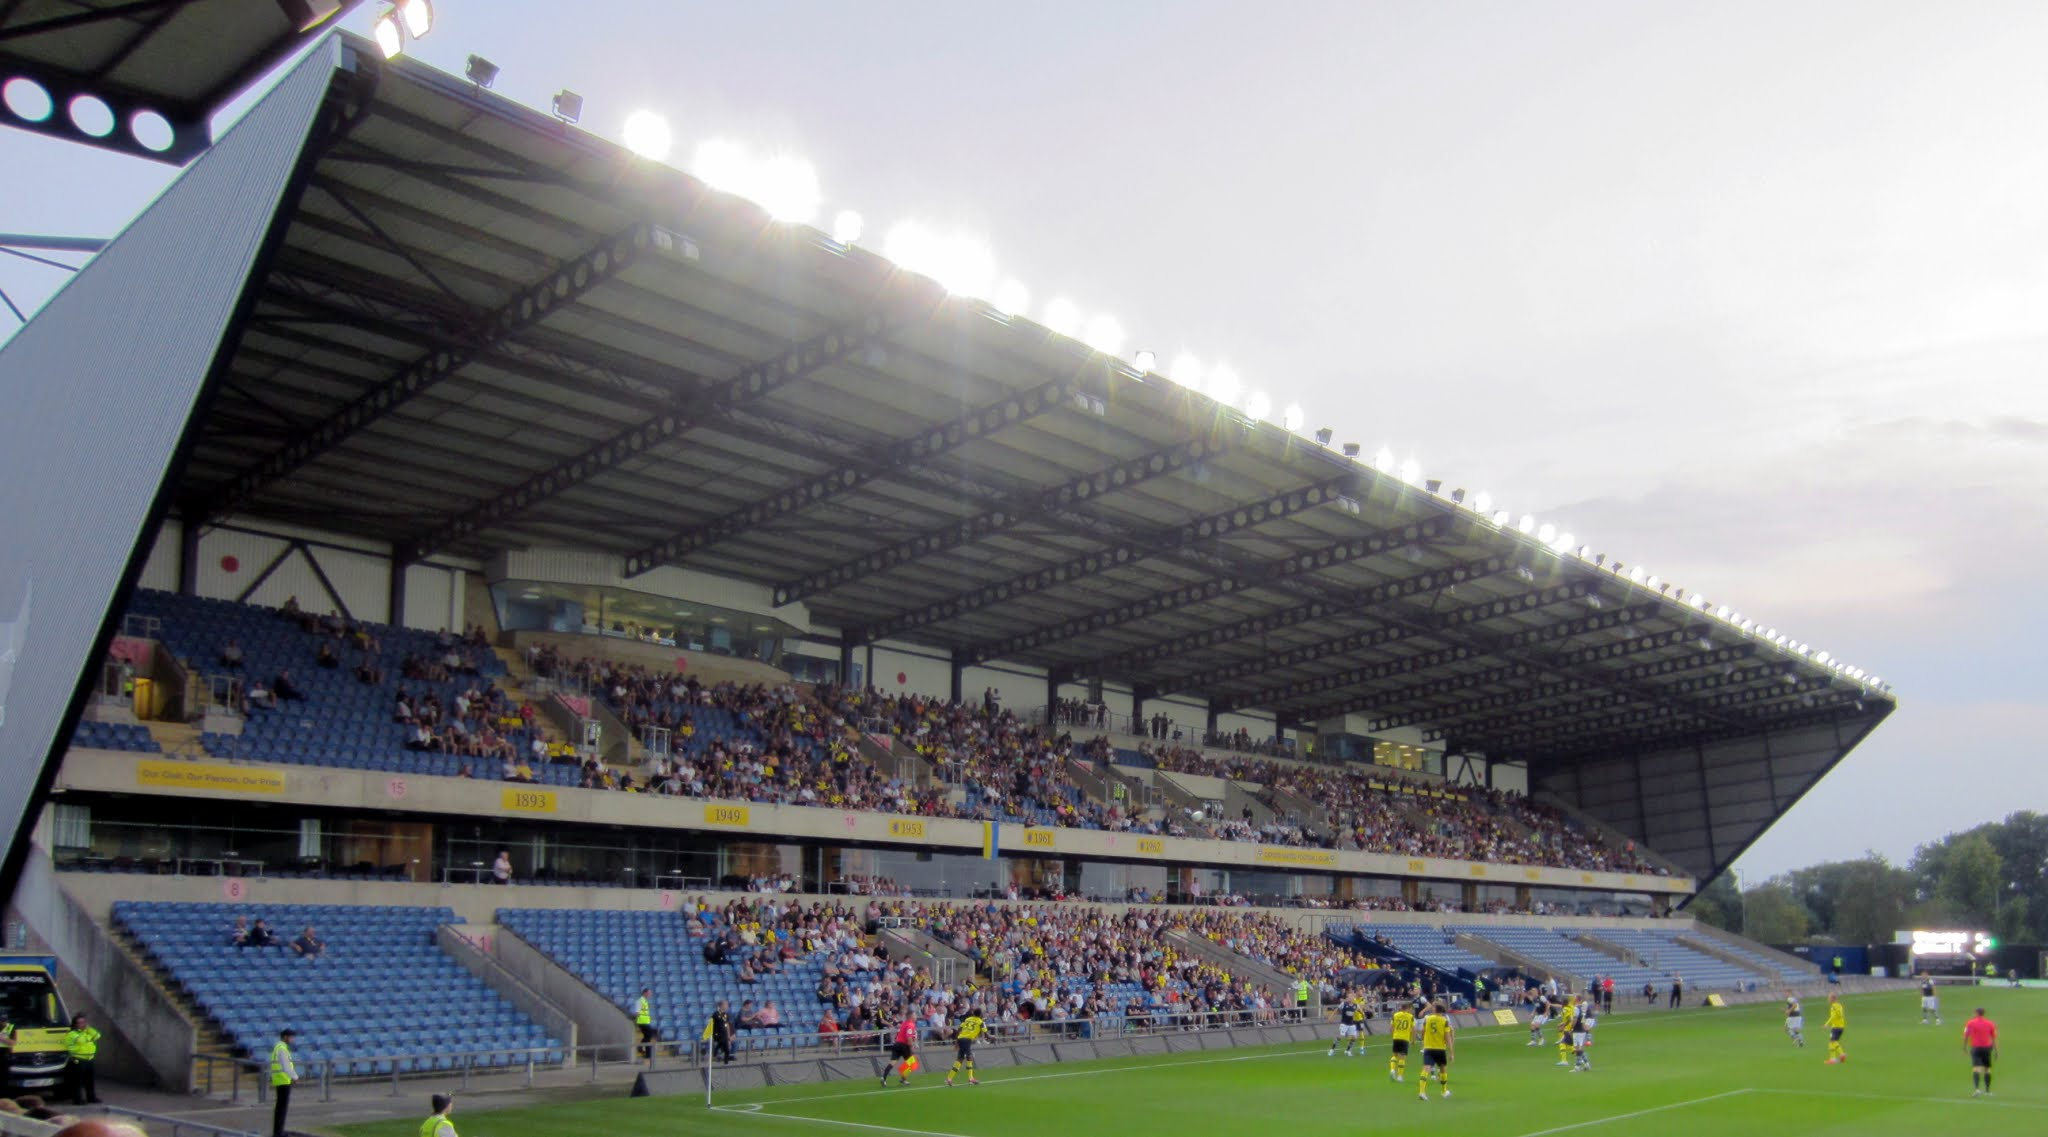 South stand at The Kassam Stadium